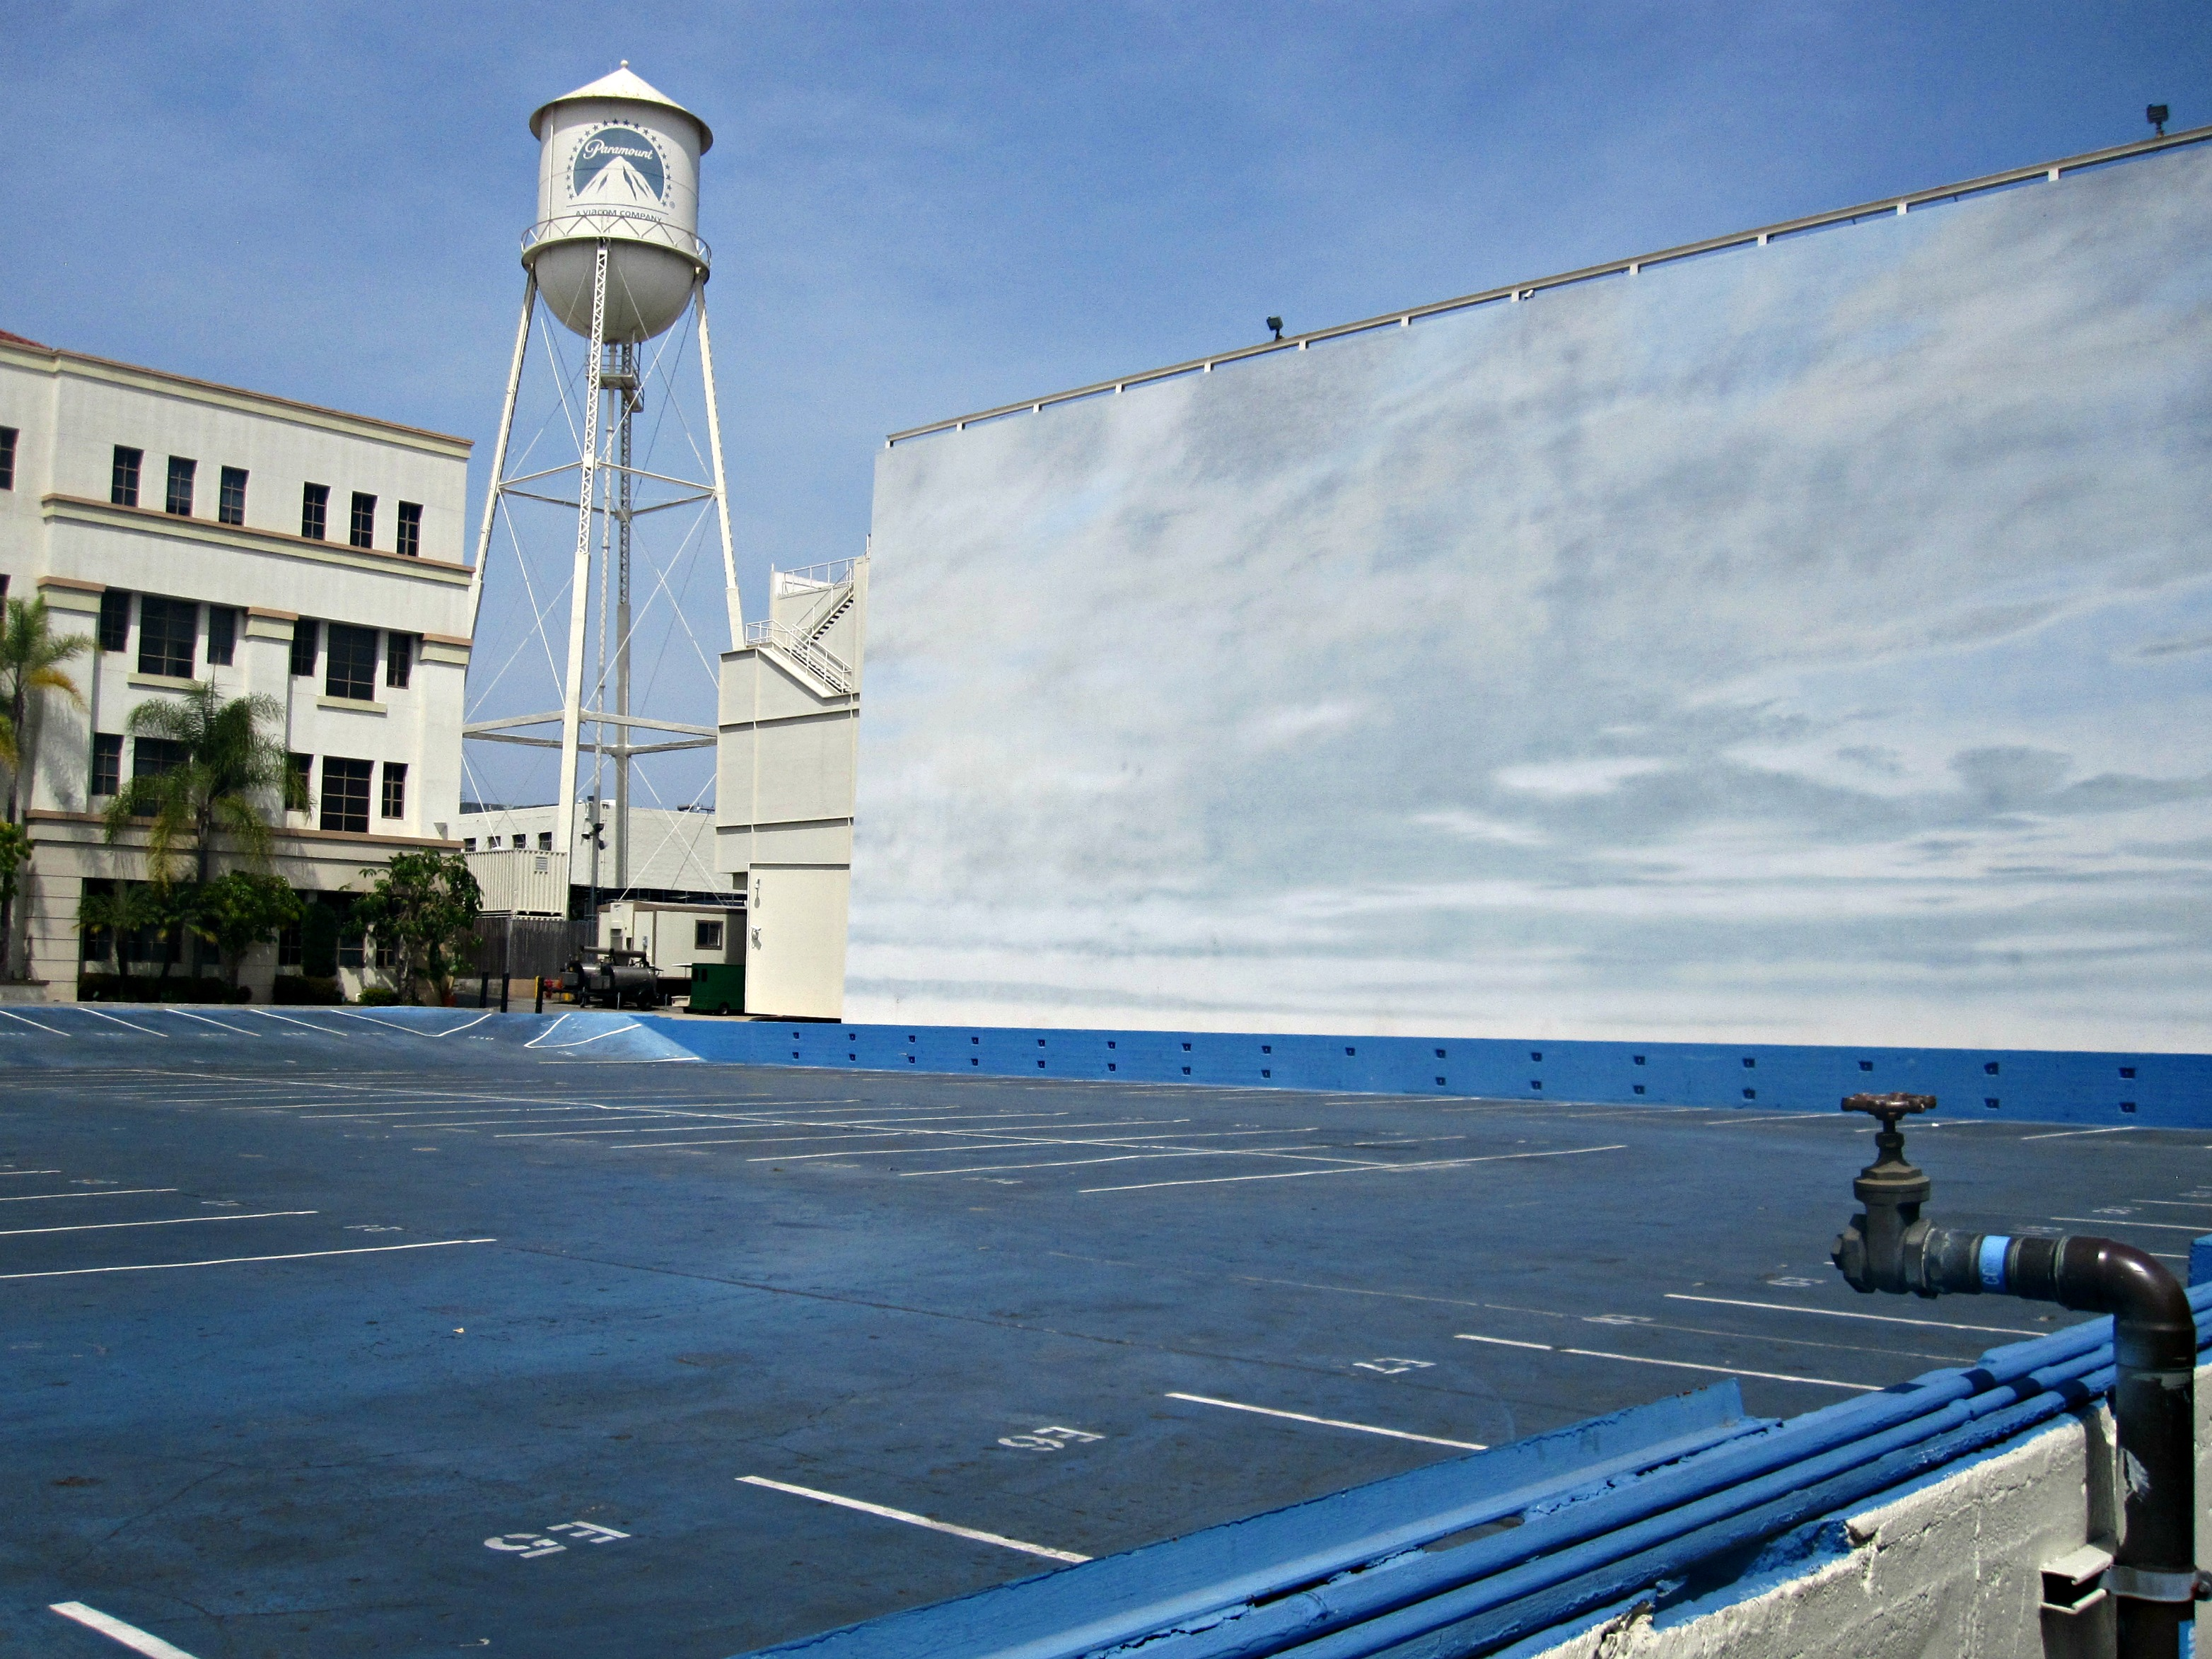 This tank (parking lot) is often filled with water, the background is changed and water scenes are filmed here.  The water scene from The Curious Case of Benjamin Button was filmed here.